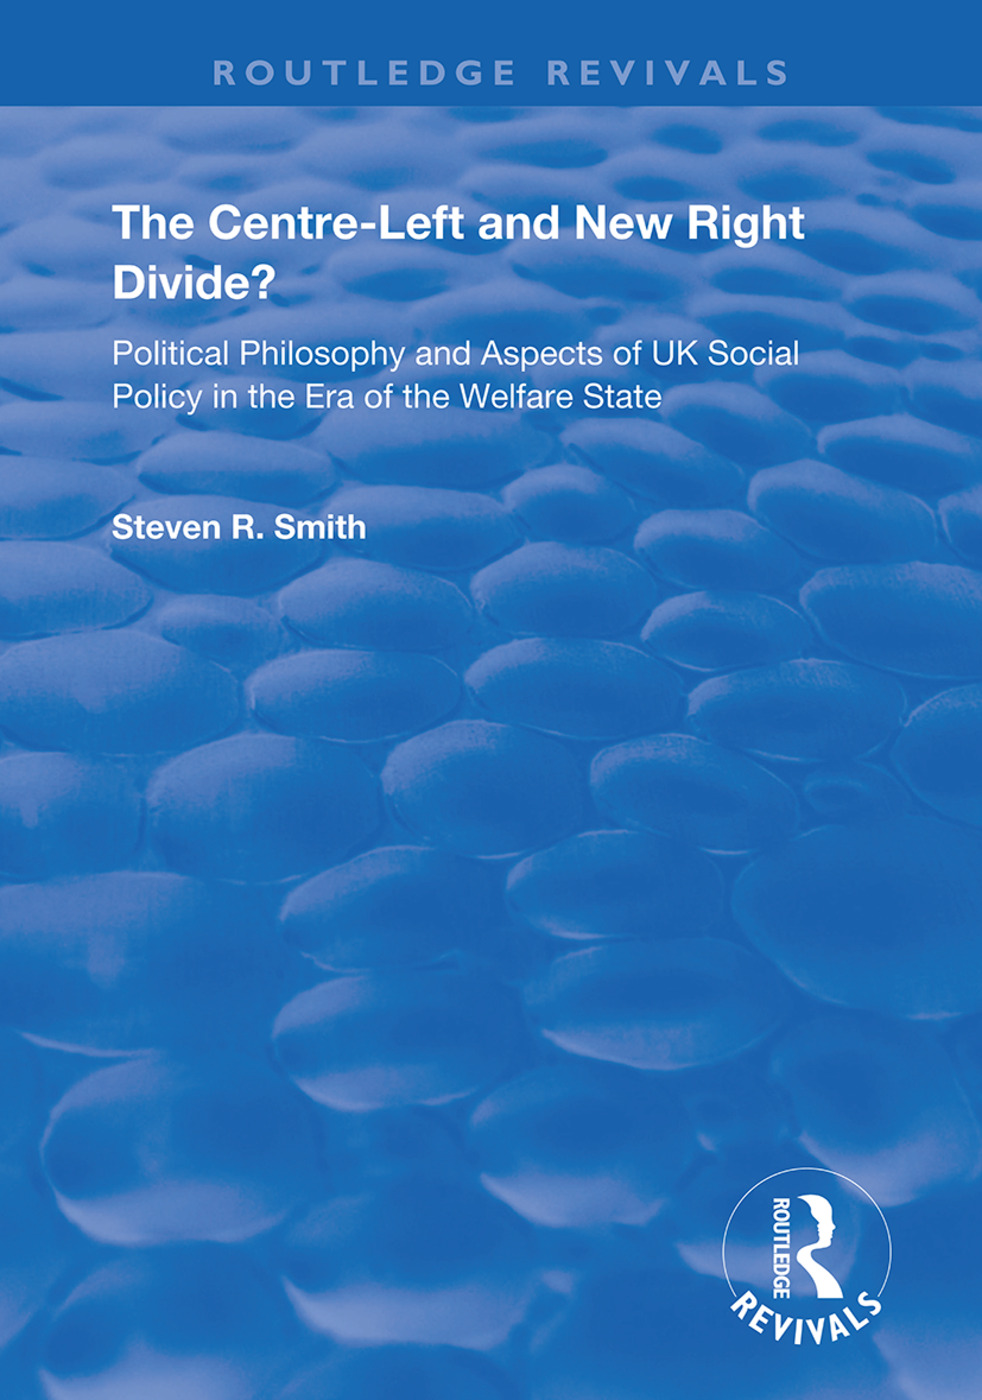 The Centre-left and New Right Divide?: Political Philosophy and Aspects of UK Social Policy in the Era of the Welfare State book cover